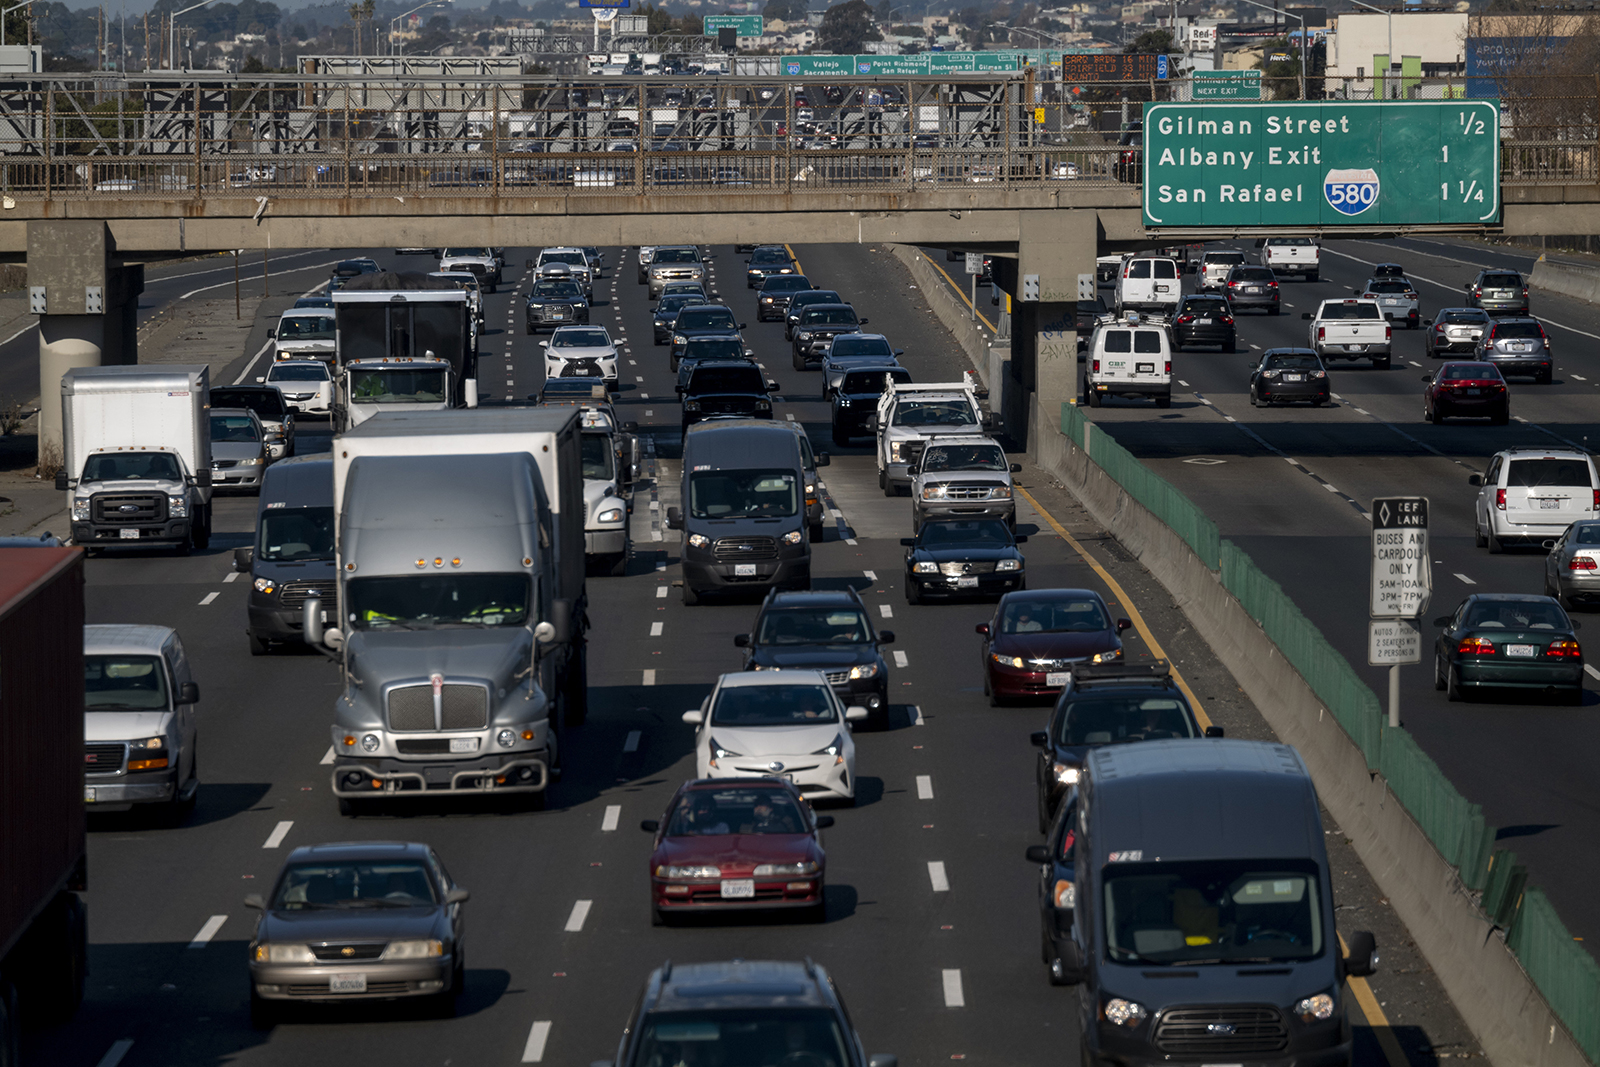 Vehicles travel along Interstate 80 in Berkeley, California, on December, 22, 2020.